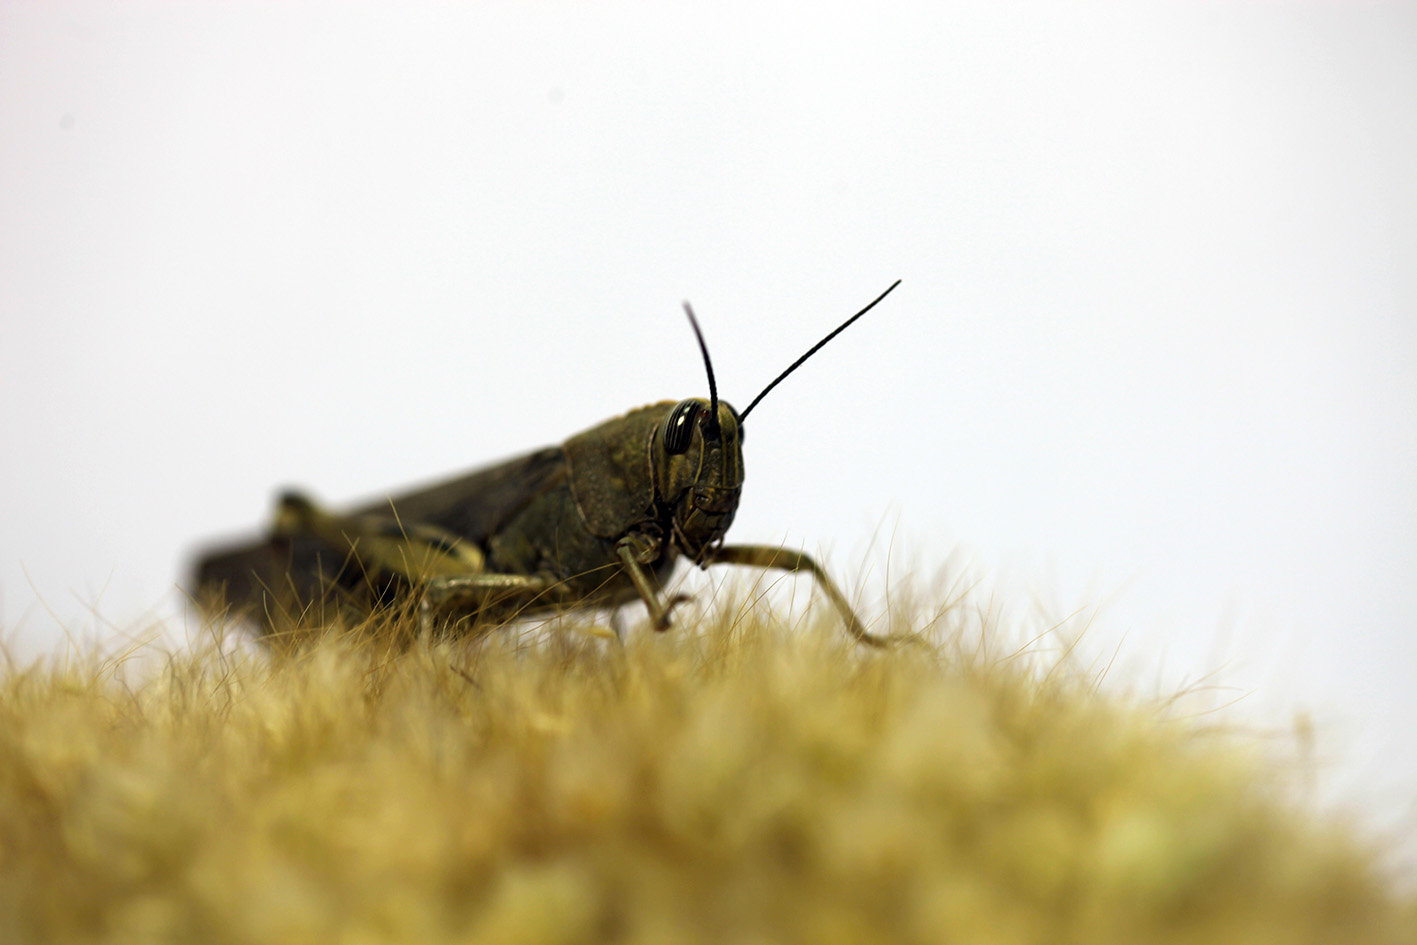 monsieur plant grasshopper insect justgrowit 			copyright2014